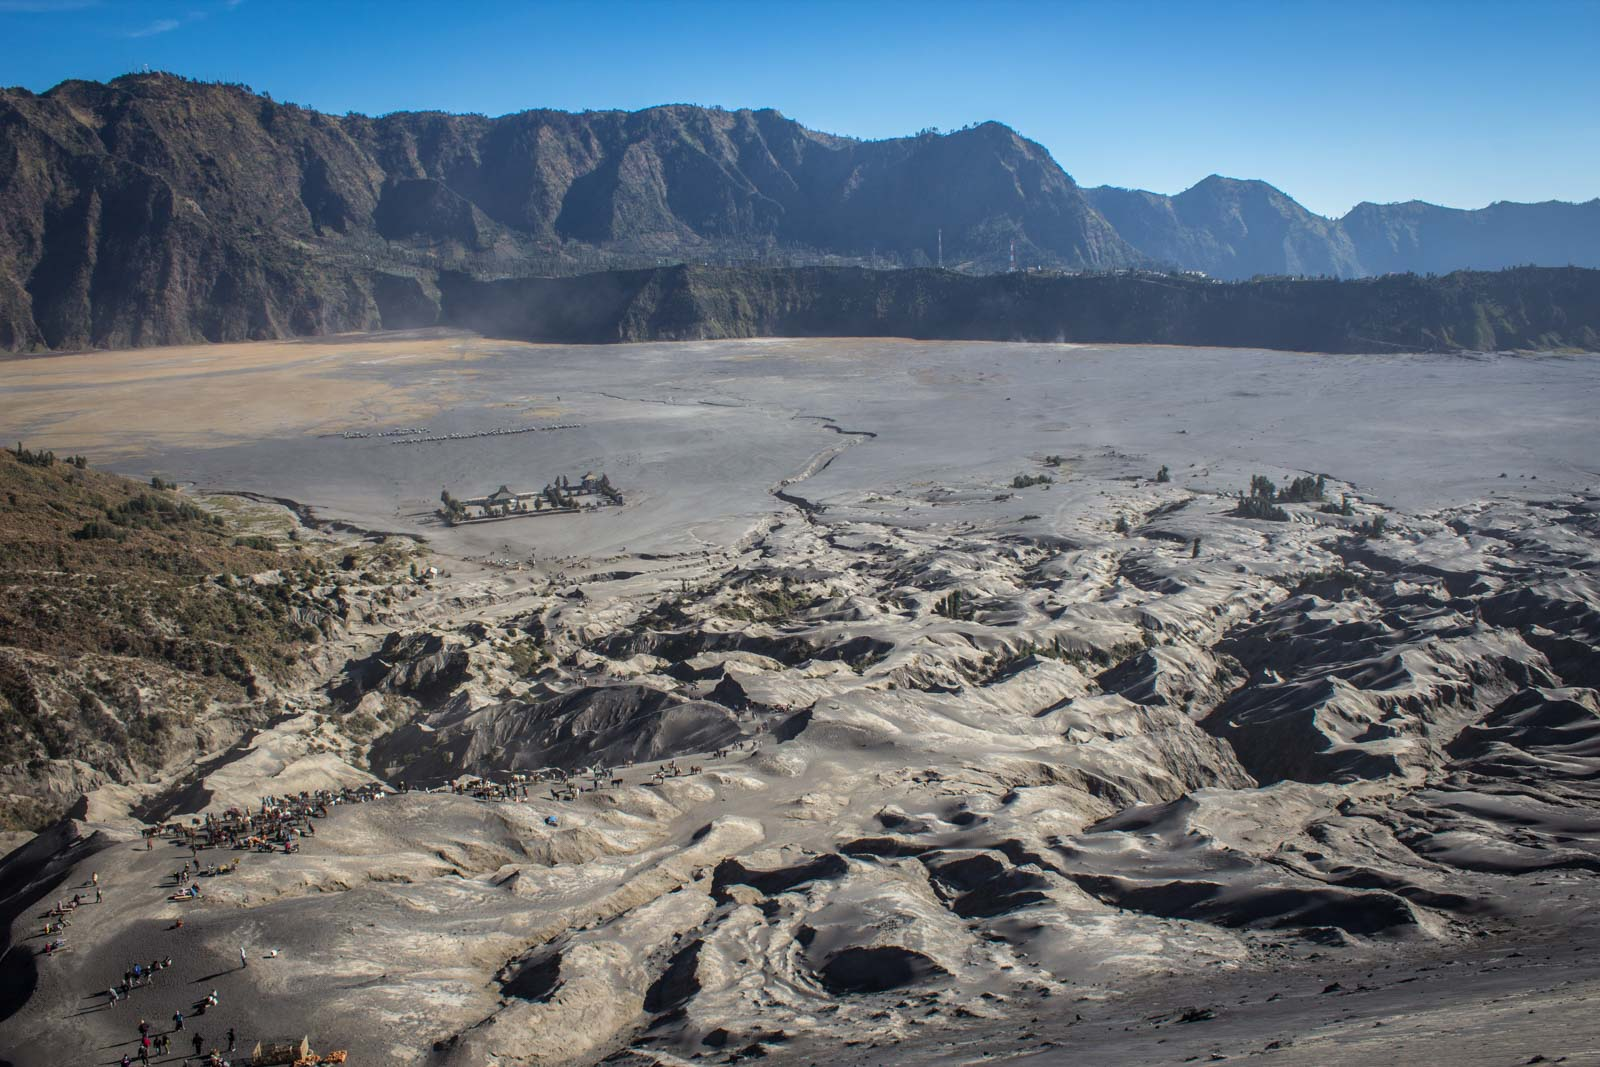 Visiting Mount Bromo for sunrise, Indonesia